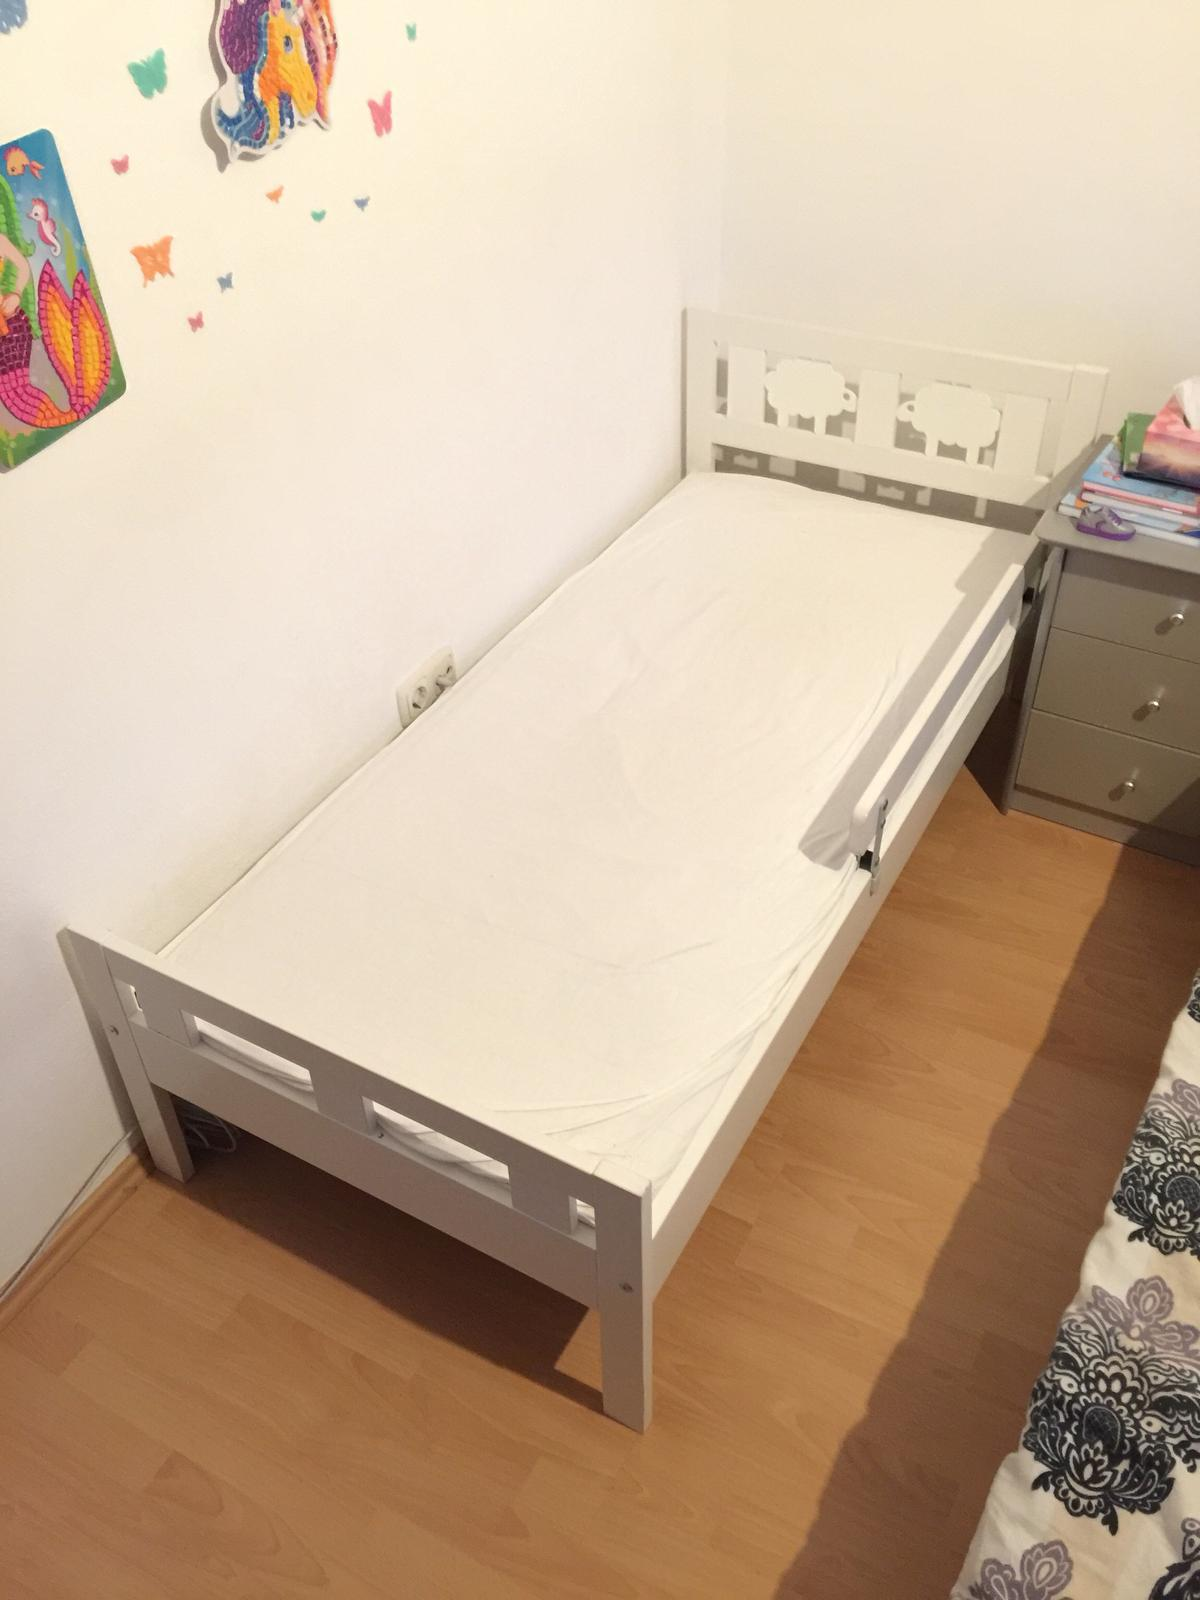 Kinderbett 160x70 Inkl L Rost U Matratze In 80809 München For 90 00 For Sale Shpock